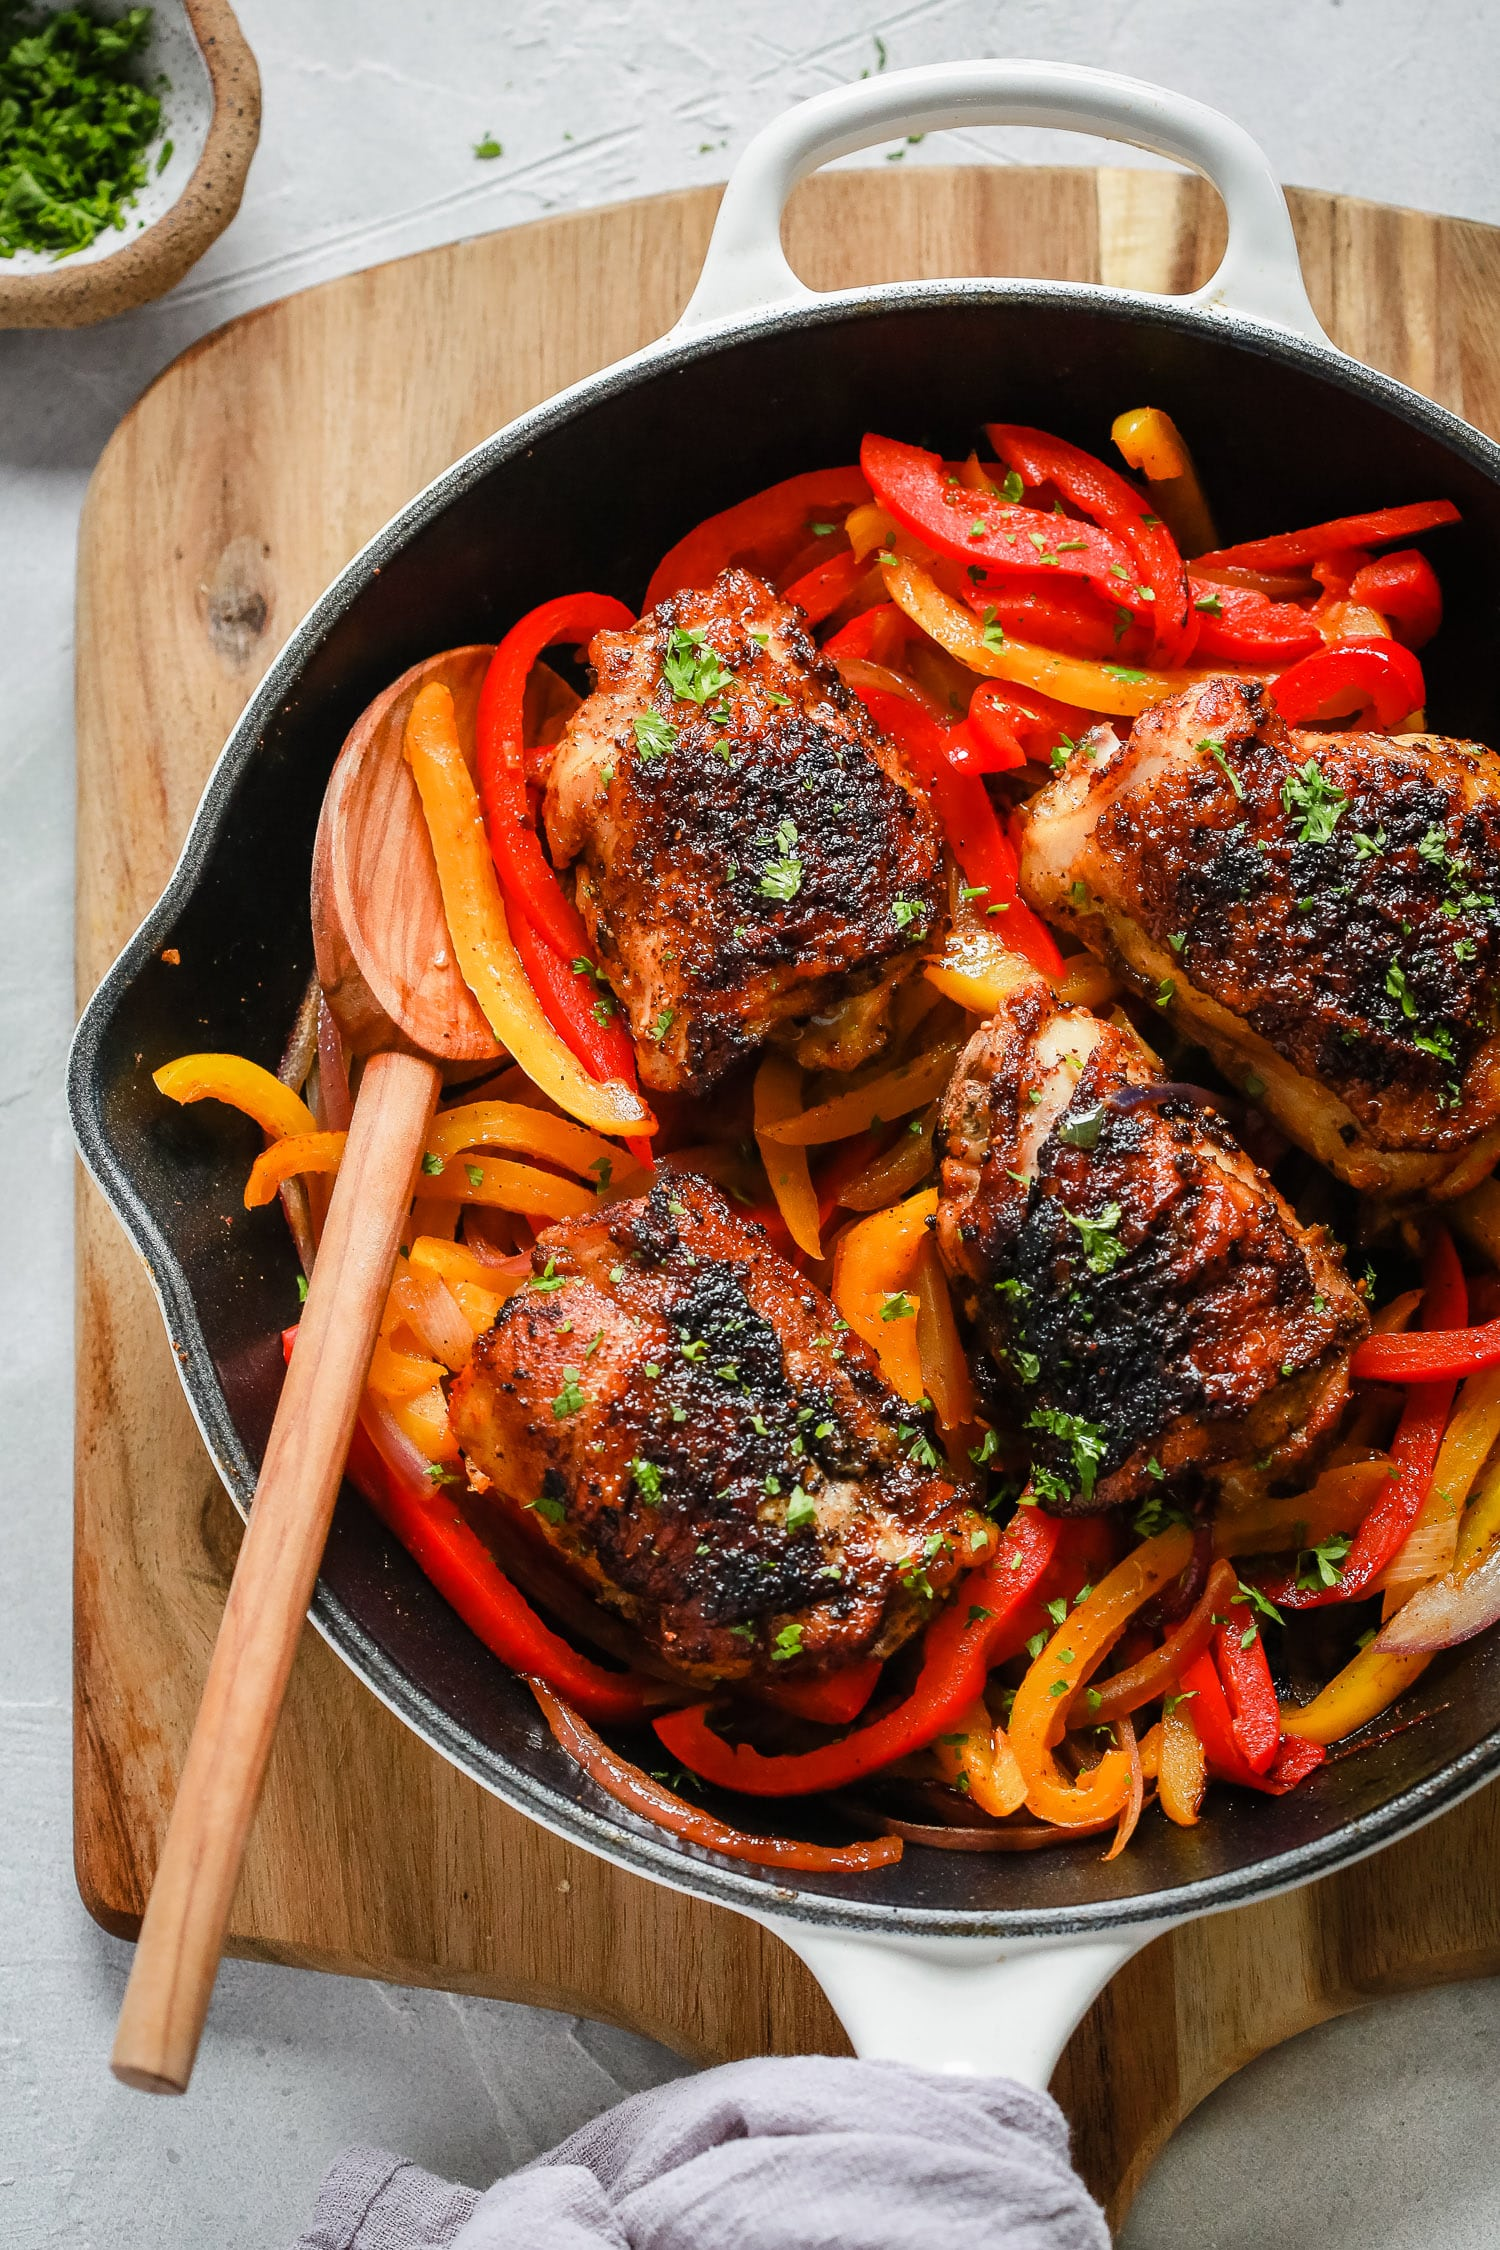 Headshot Chicken and Bell Peppers Skillet